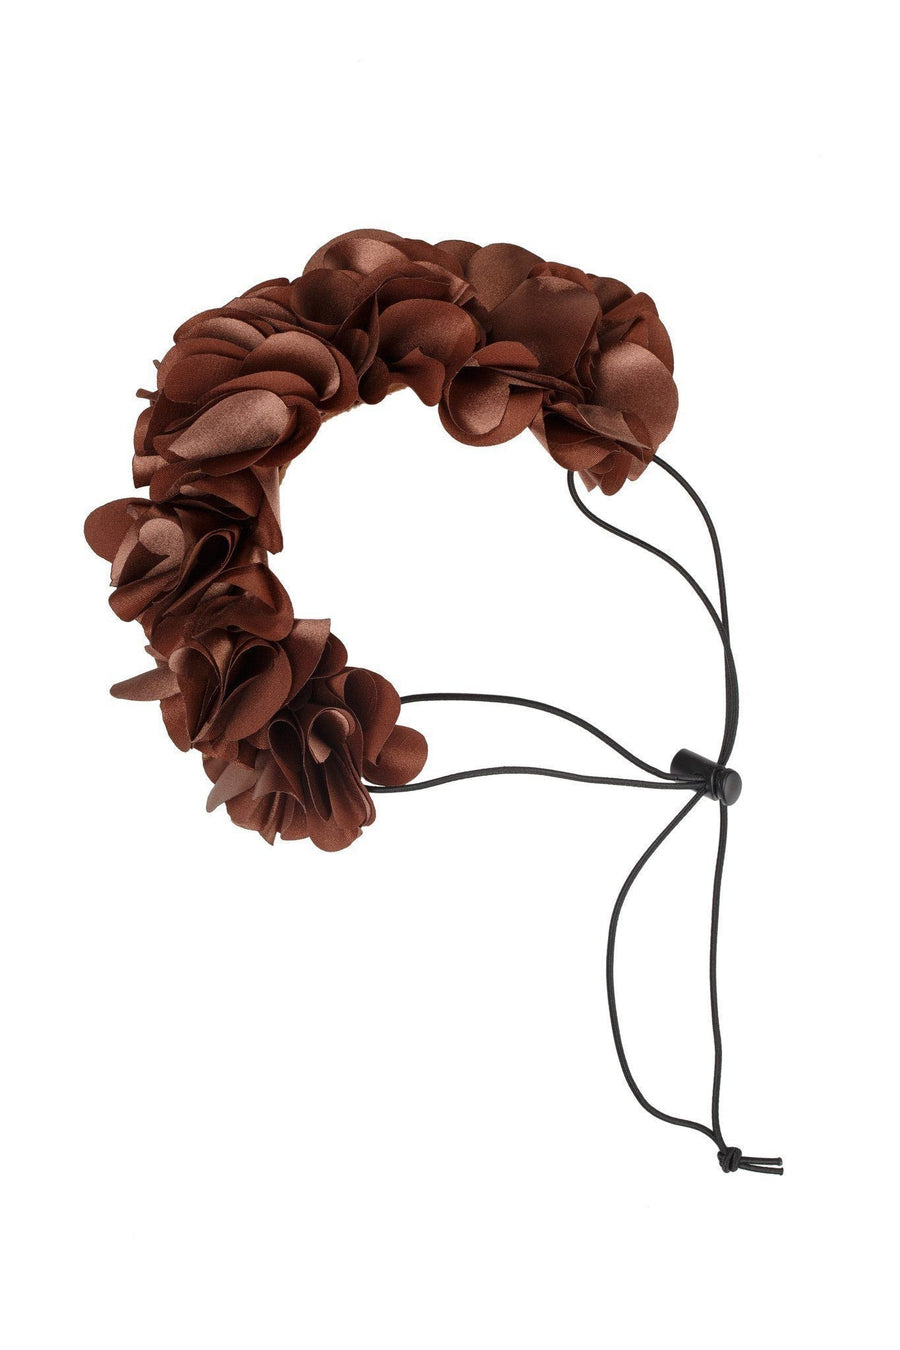 Floral Wreath Petit - Brown